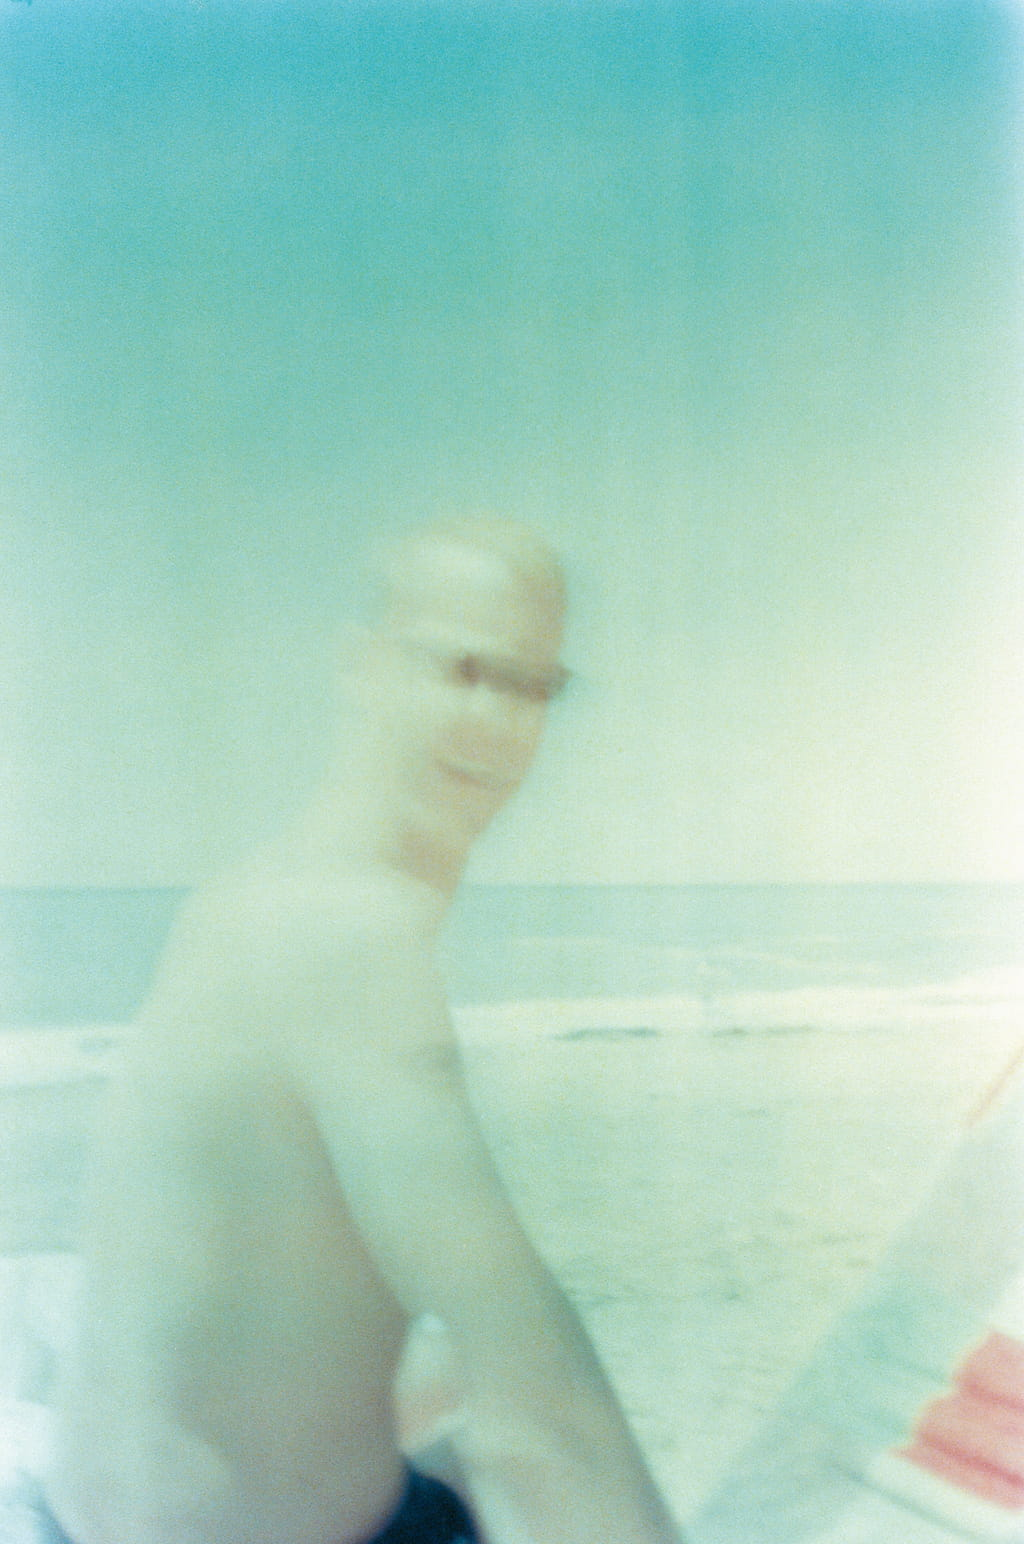 A photo of a man on the beach, he is moving and not in focus.